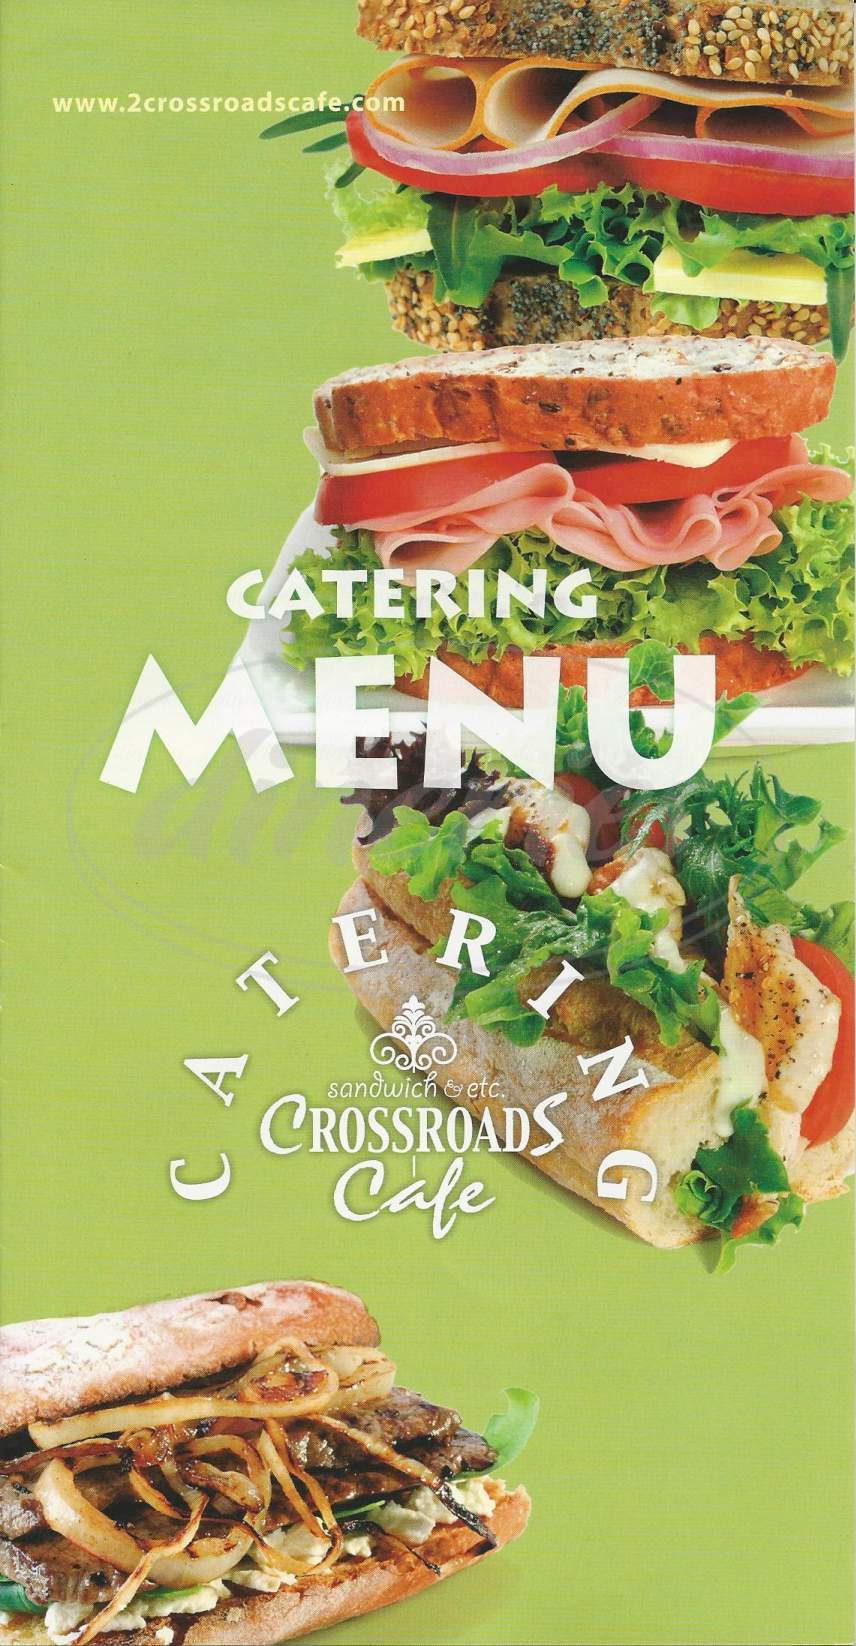 menu for Crossroads Cafe & Catering